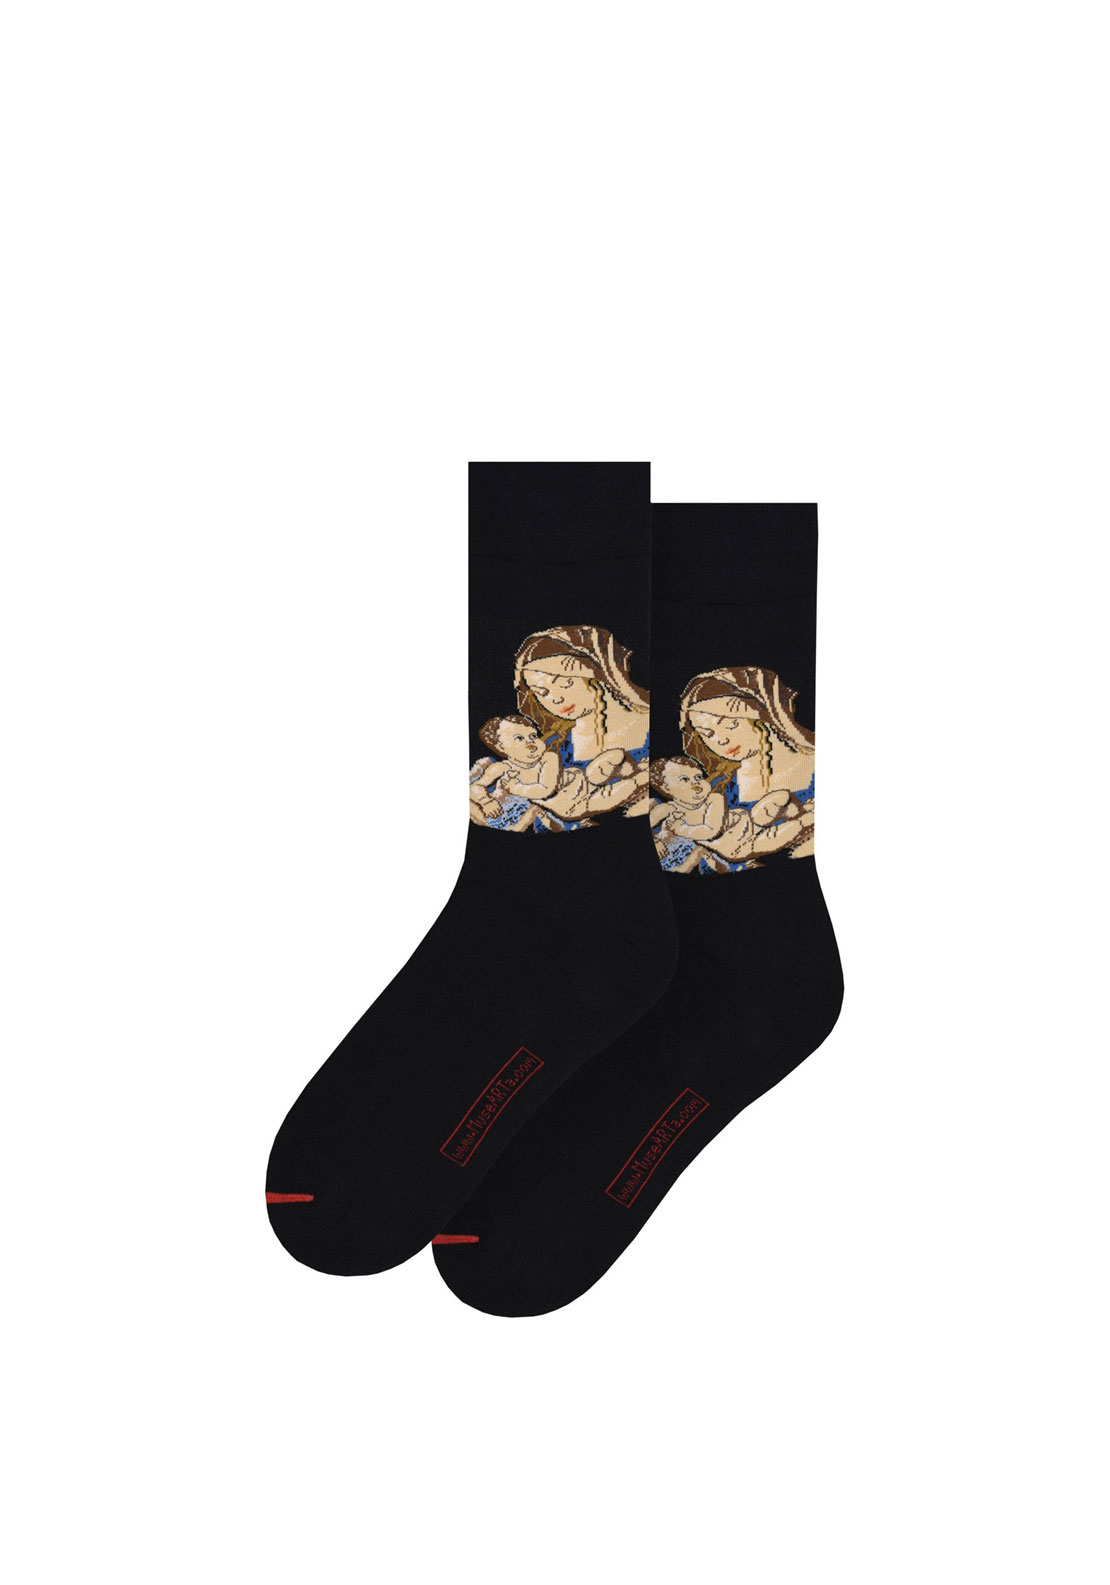 Art Sox 'Virgin and Child with a Pear' Printed Socks, 40-46